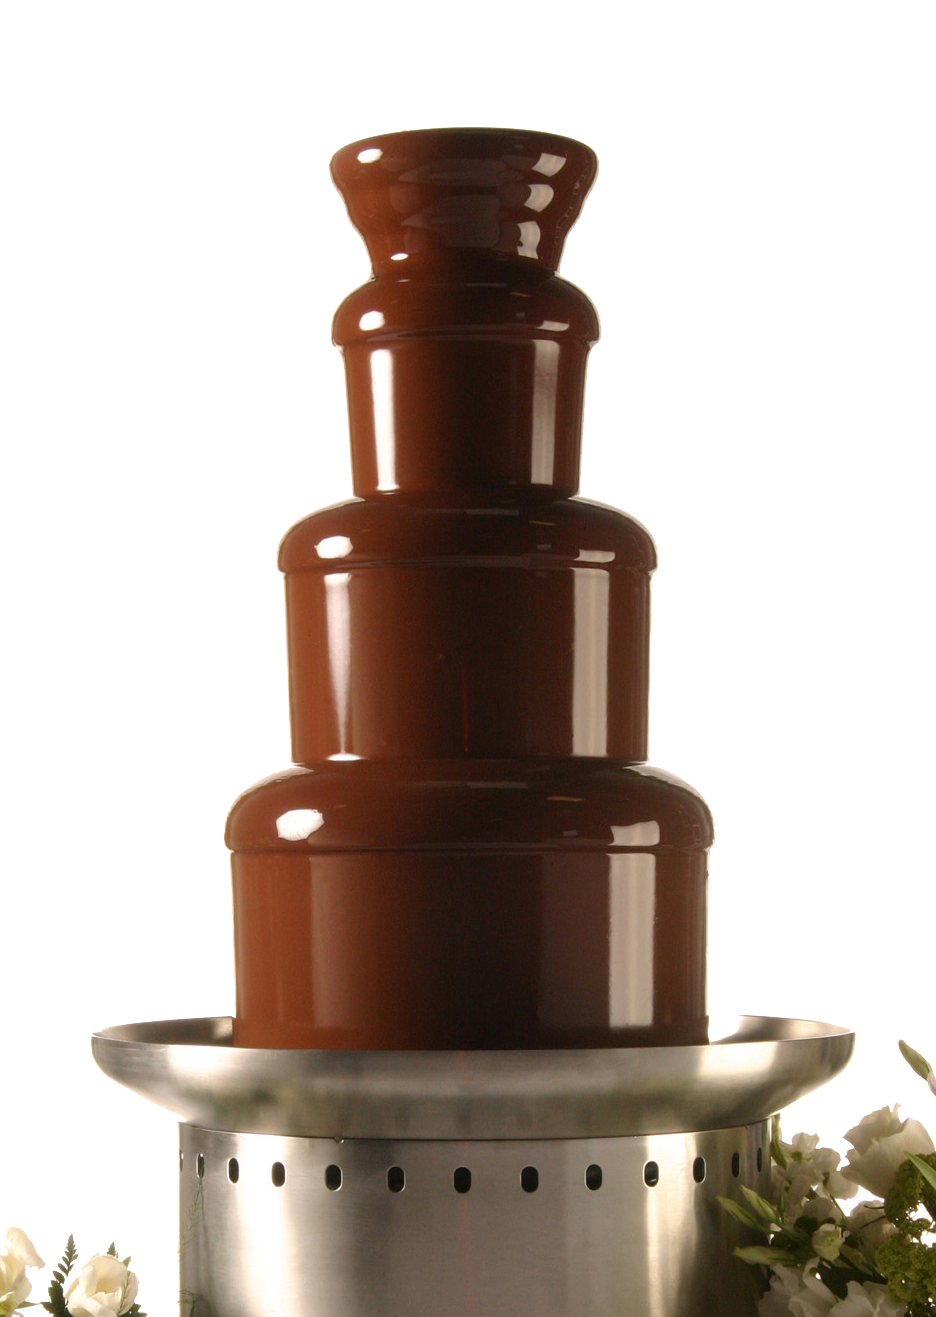 Chocolate Fondue Fountain Rentals & Event Catering - Houston, Texas